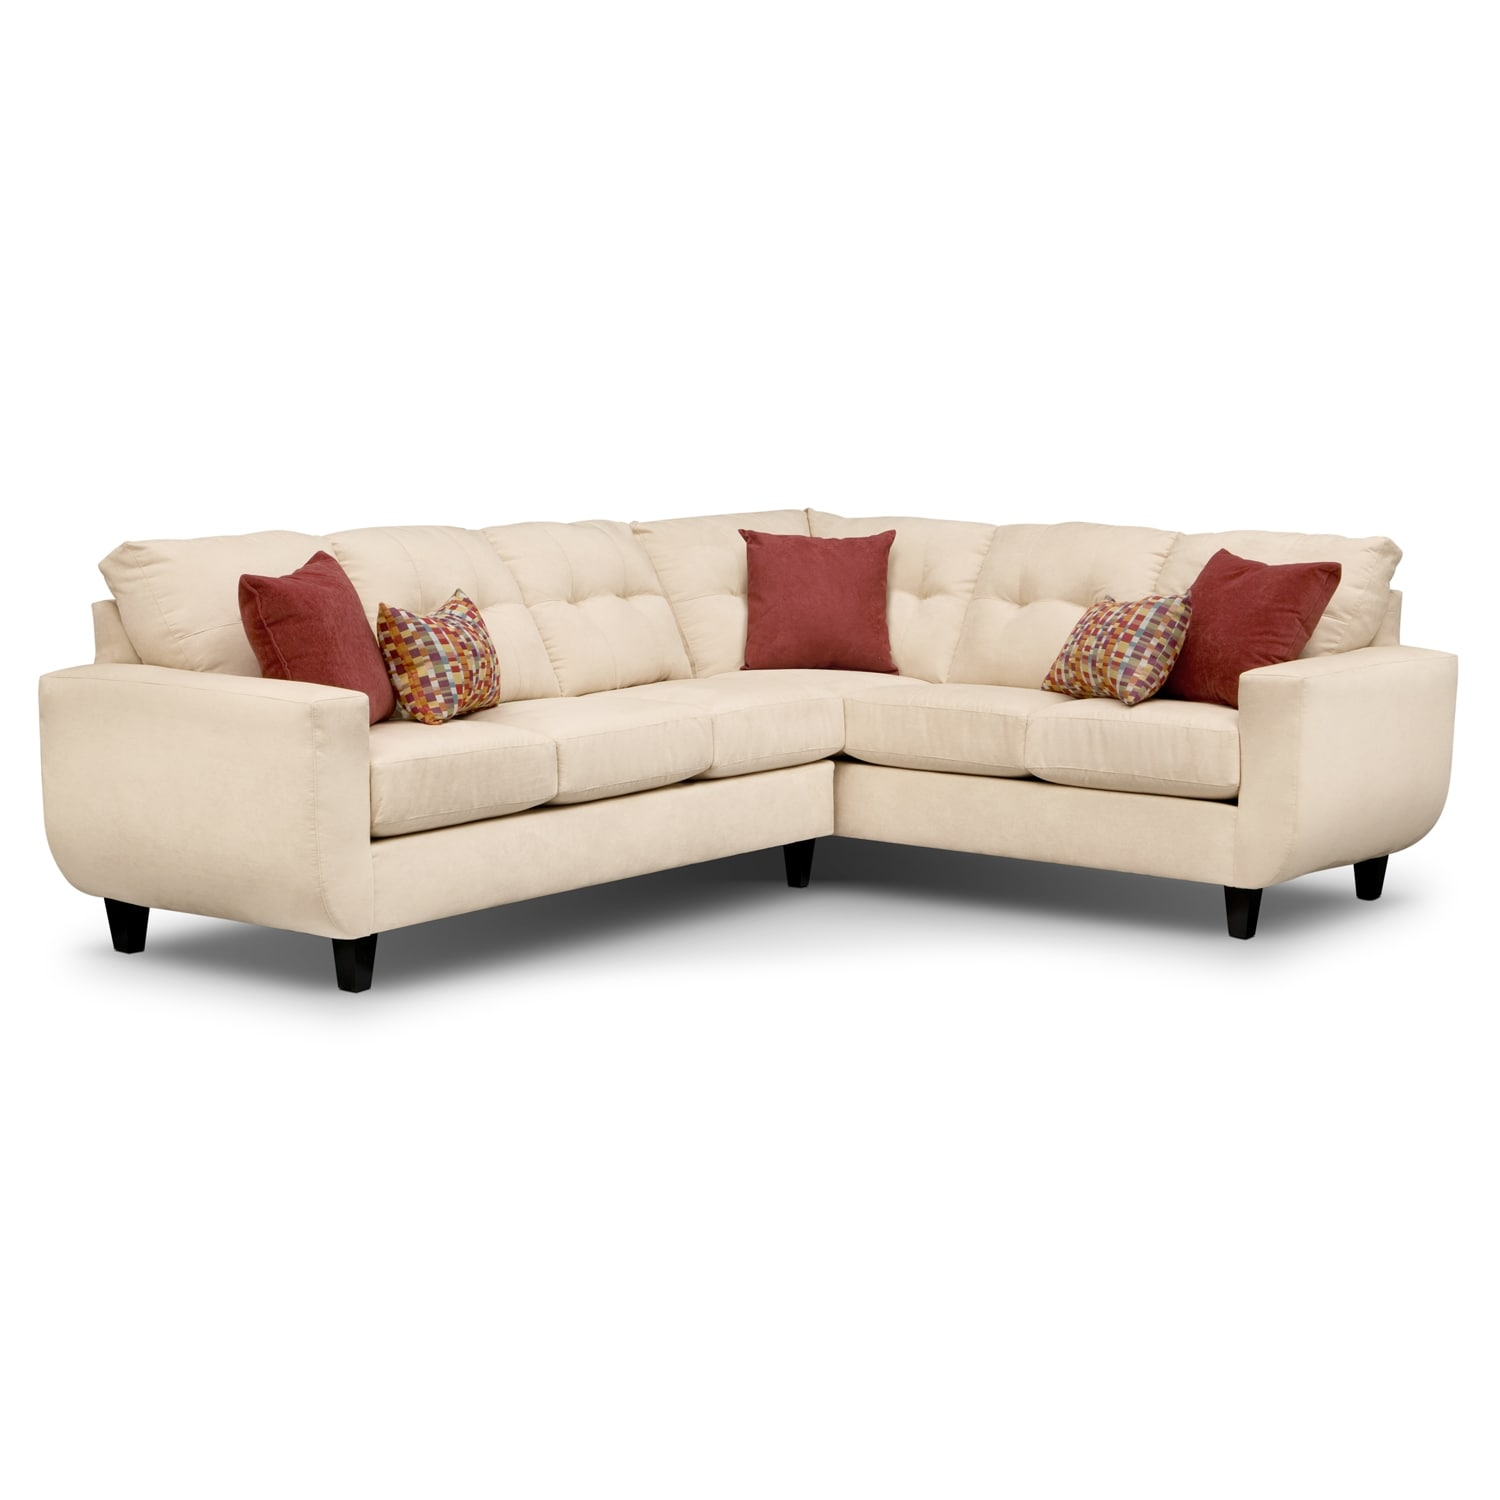 American Signature Furniture Sectionals #26: Living Room Furniture - West Village 2-Piece Sectional - Cream